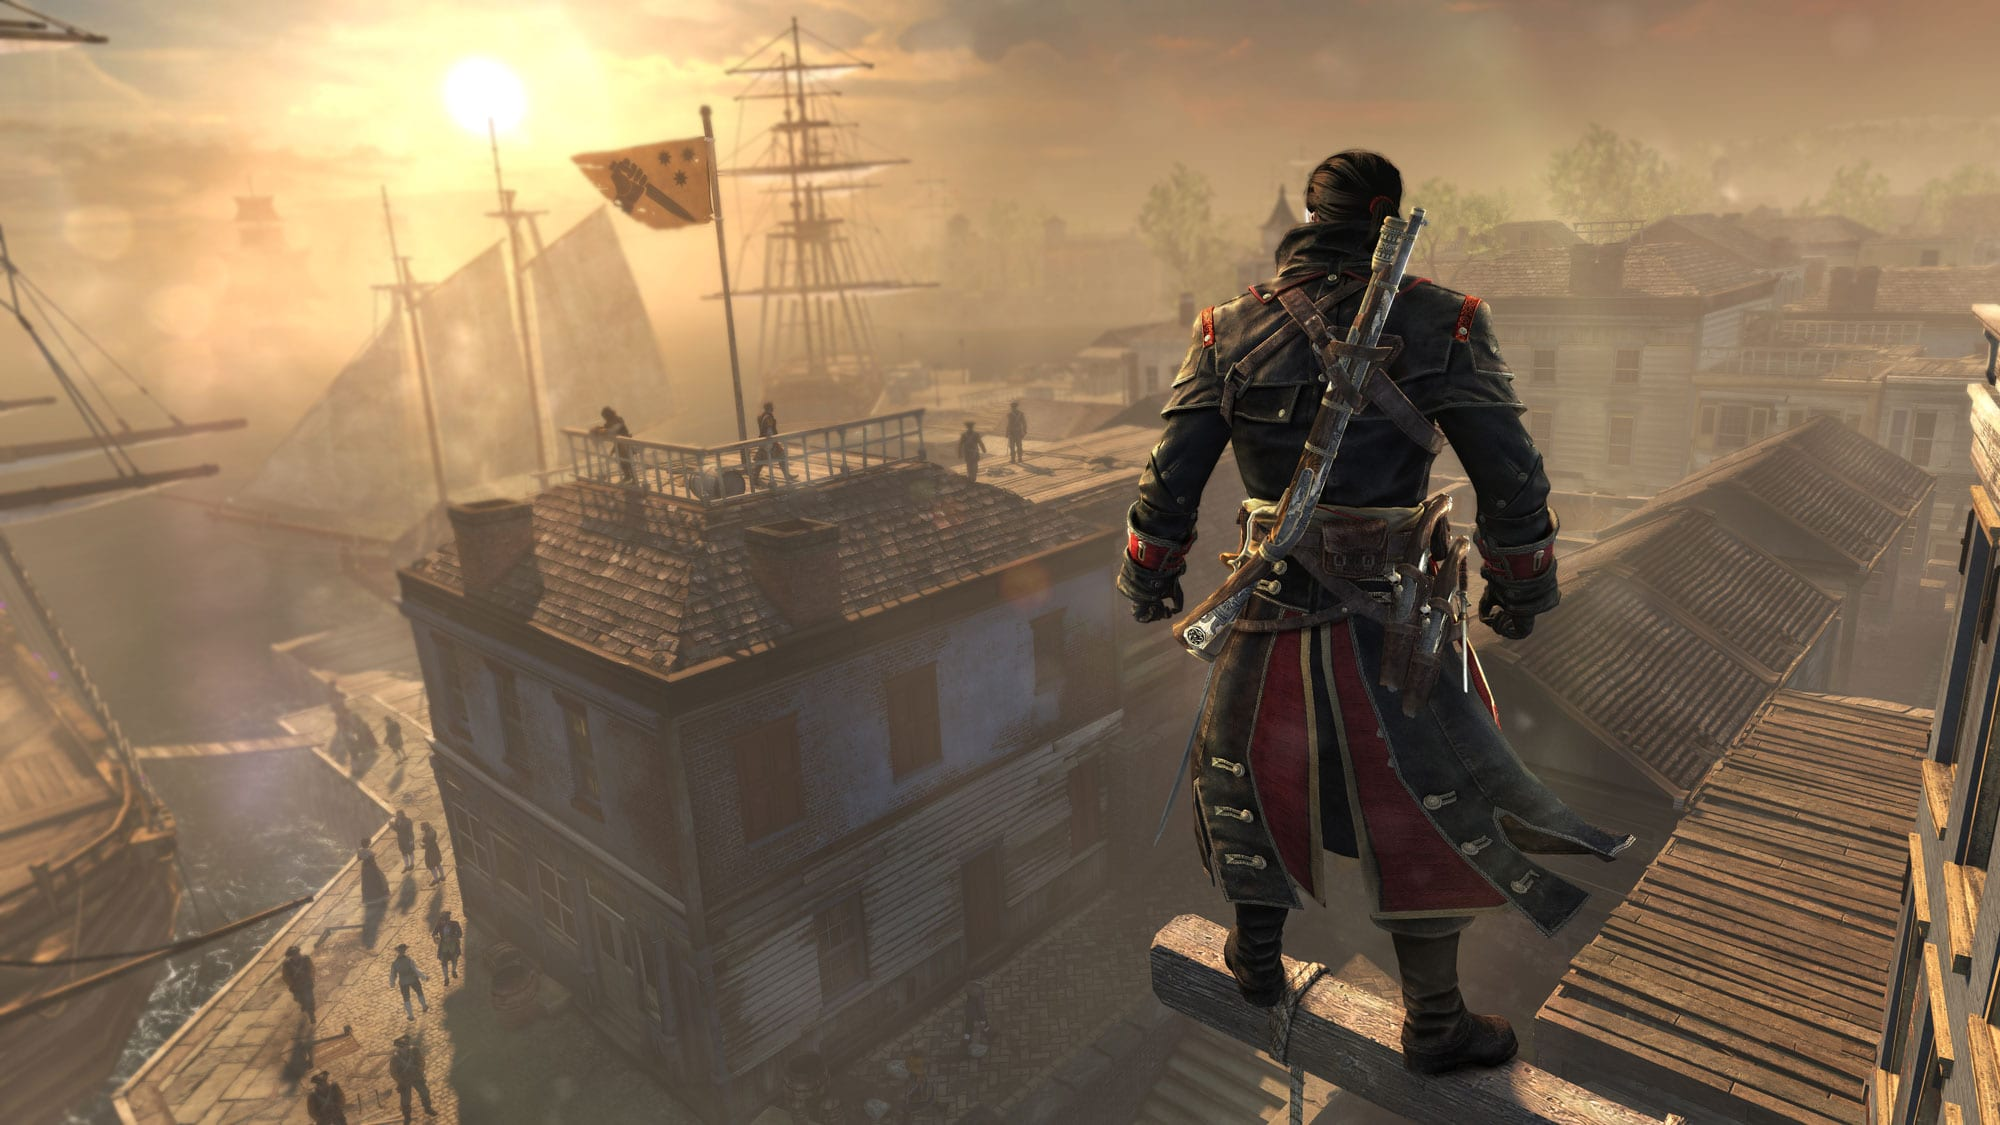 Assassin's Creed Rogue launch trailer - GameLuster